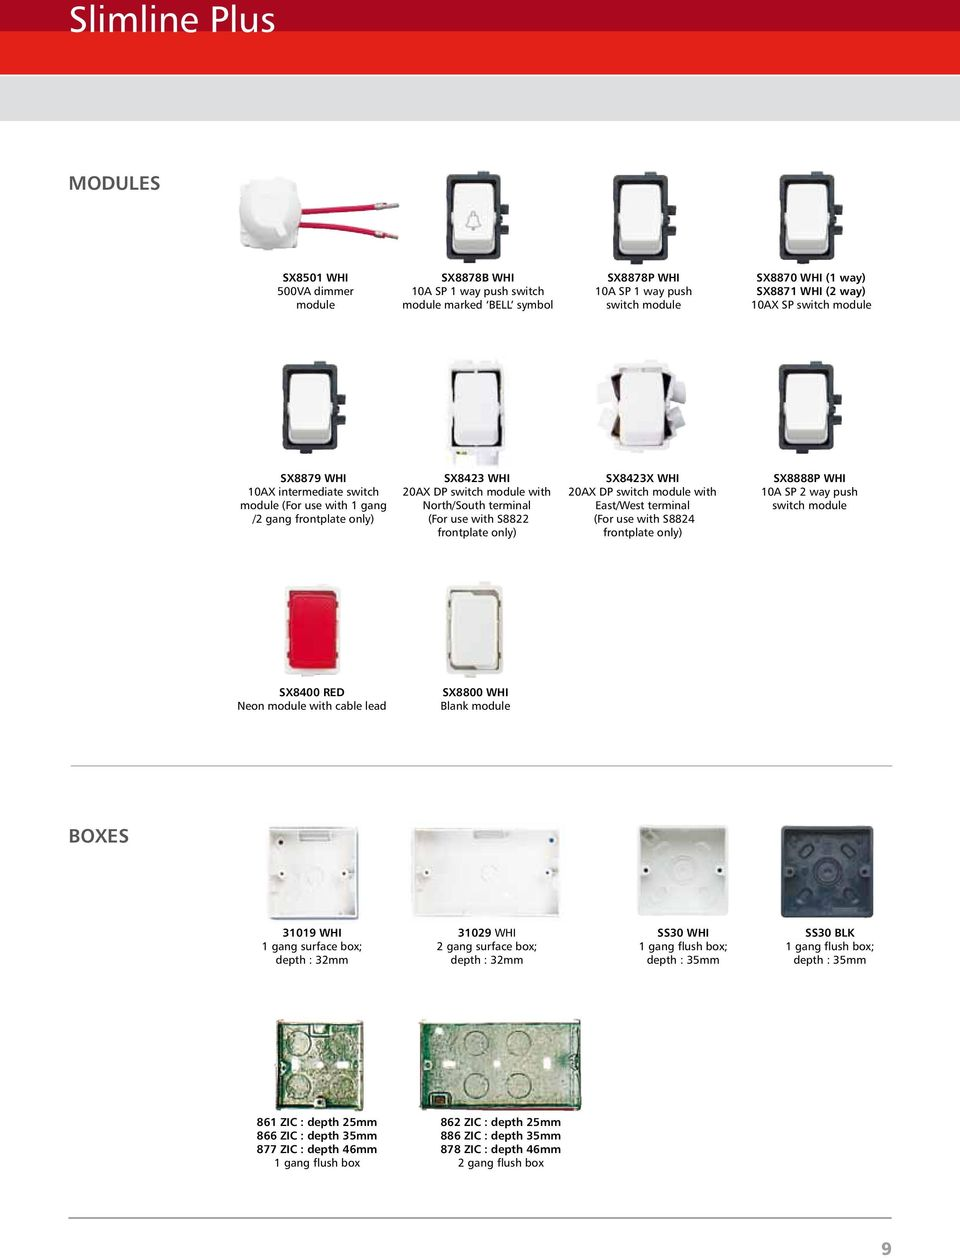 Slimline Plus Catalogue No R6 Pdf 2 Way Flush Switch Function Frontplate Only Sx8423x Whi 20ax Dp Module With East West Terminal For